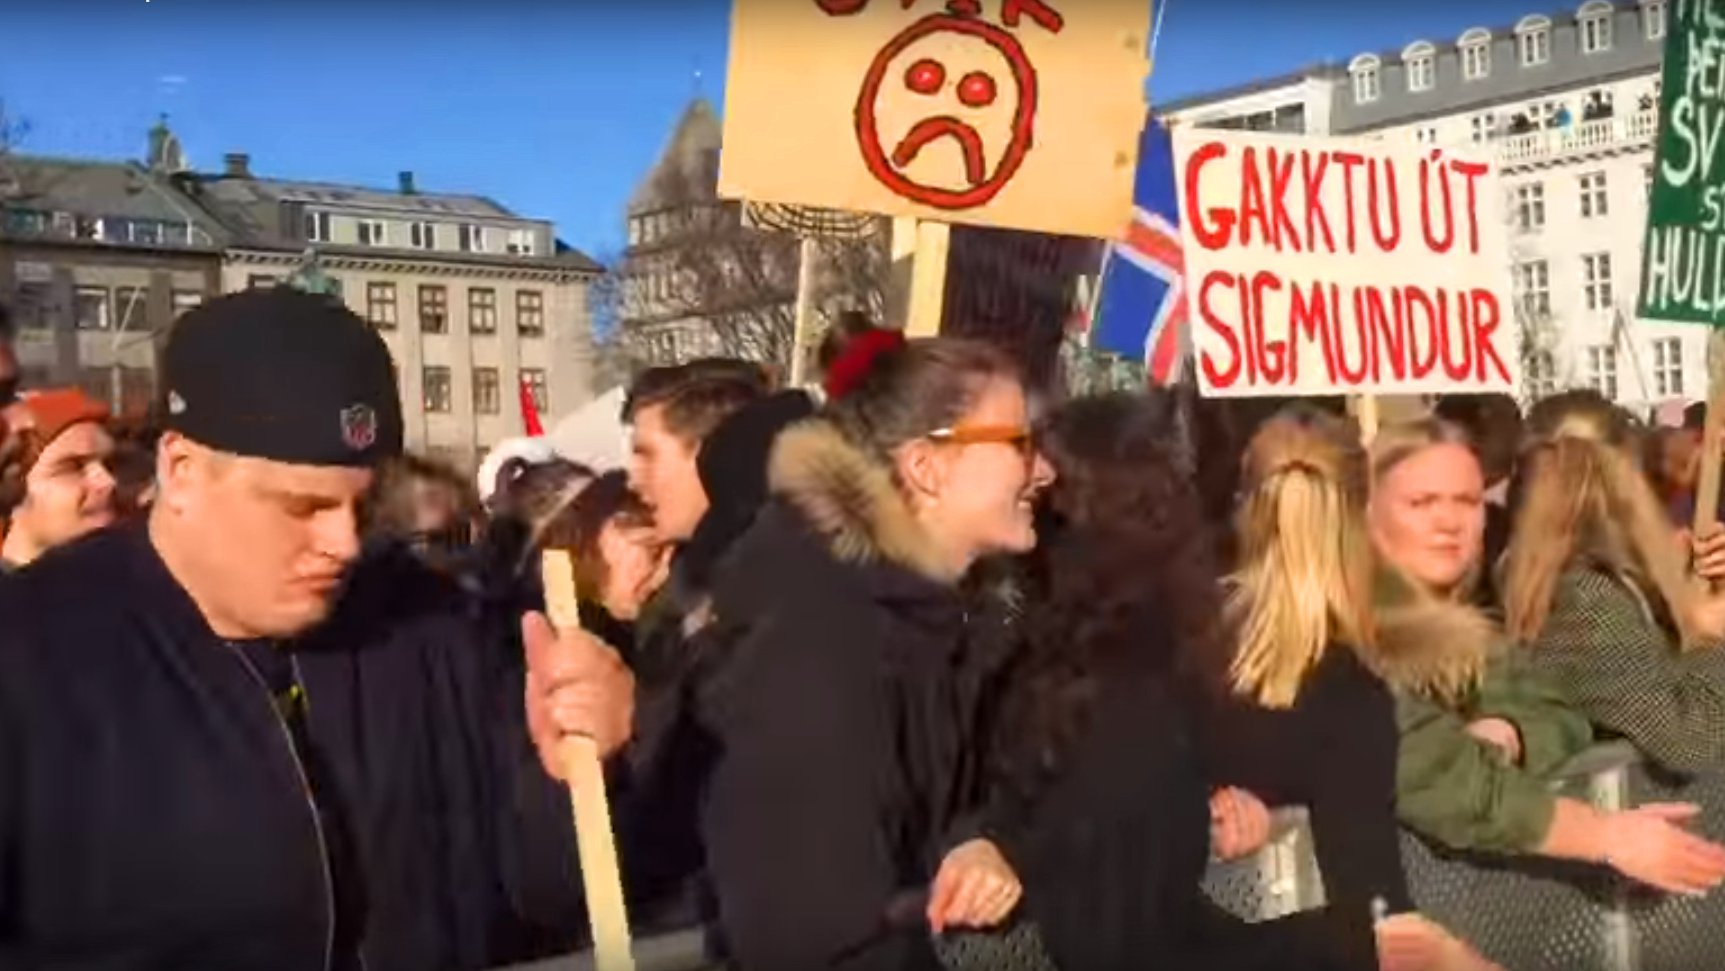 Demonstranten in Island, 2016 (Video)